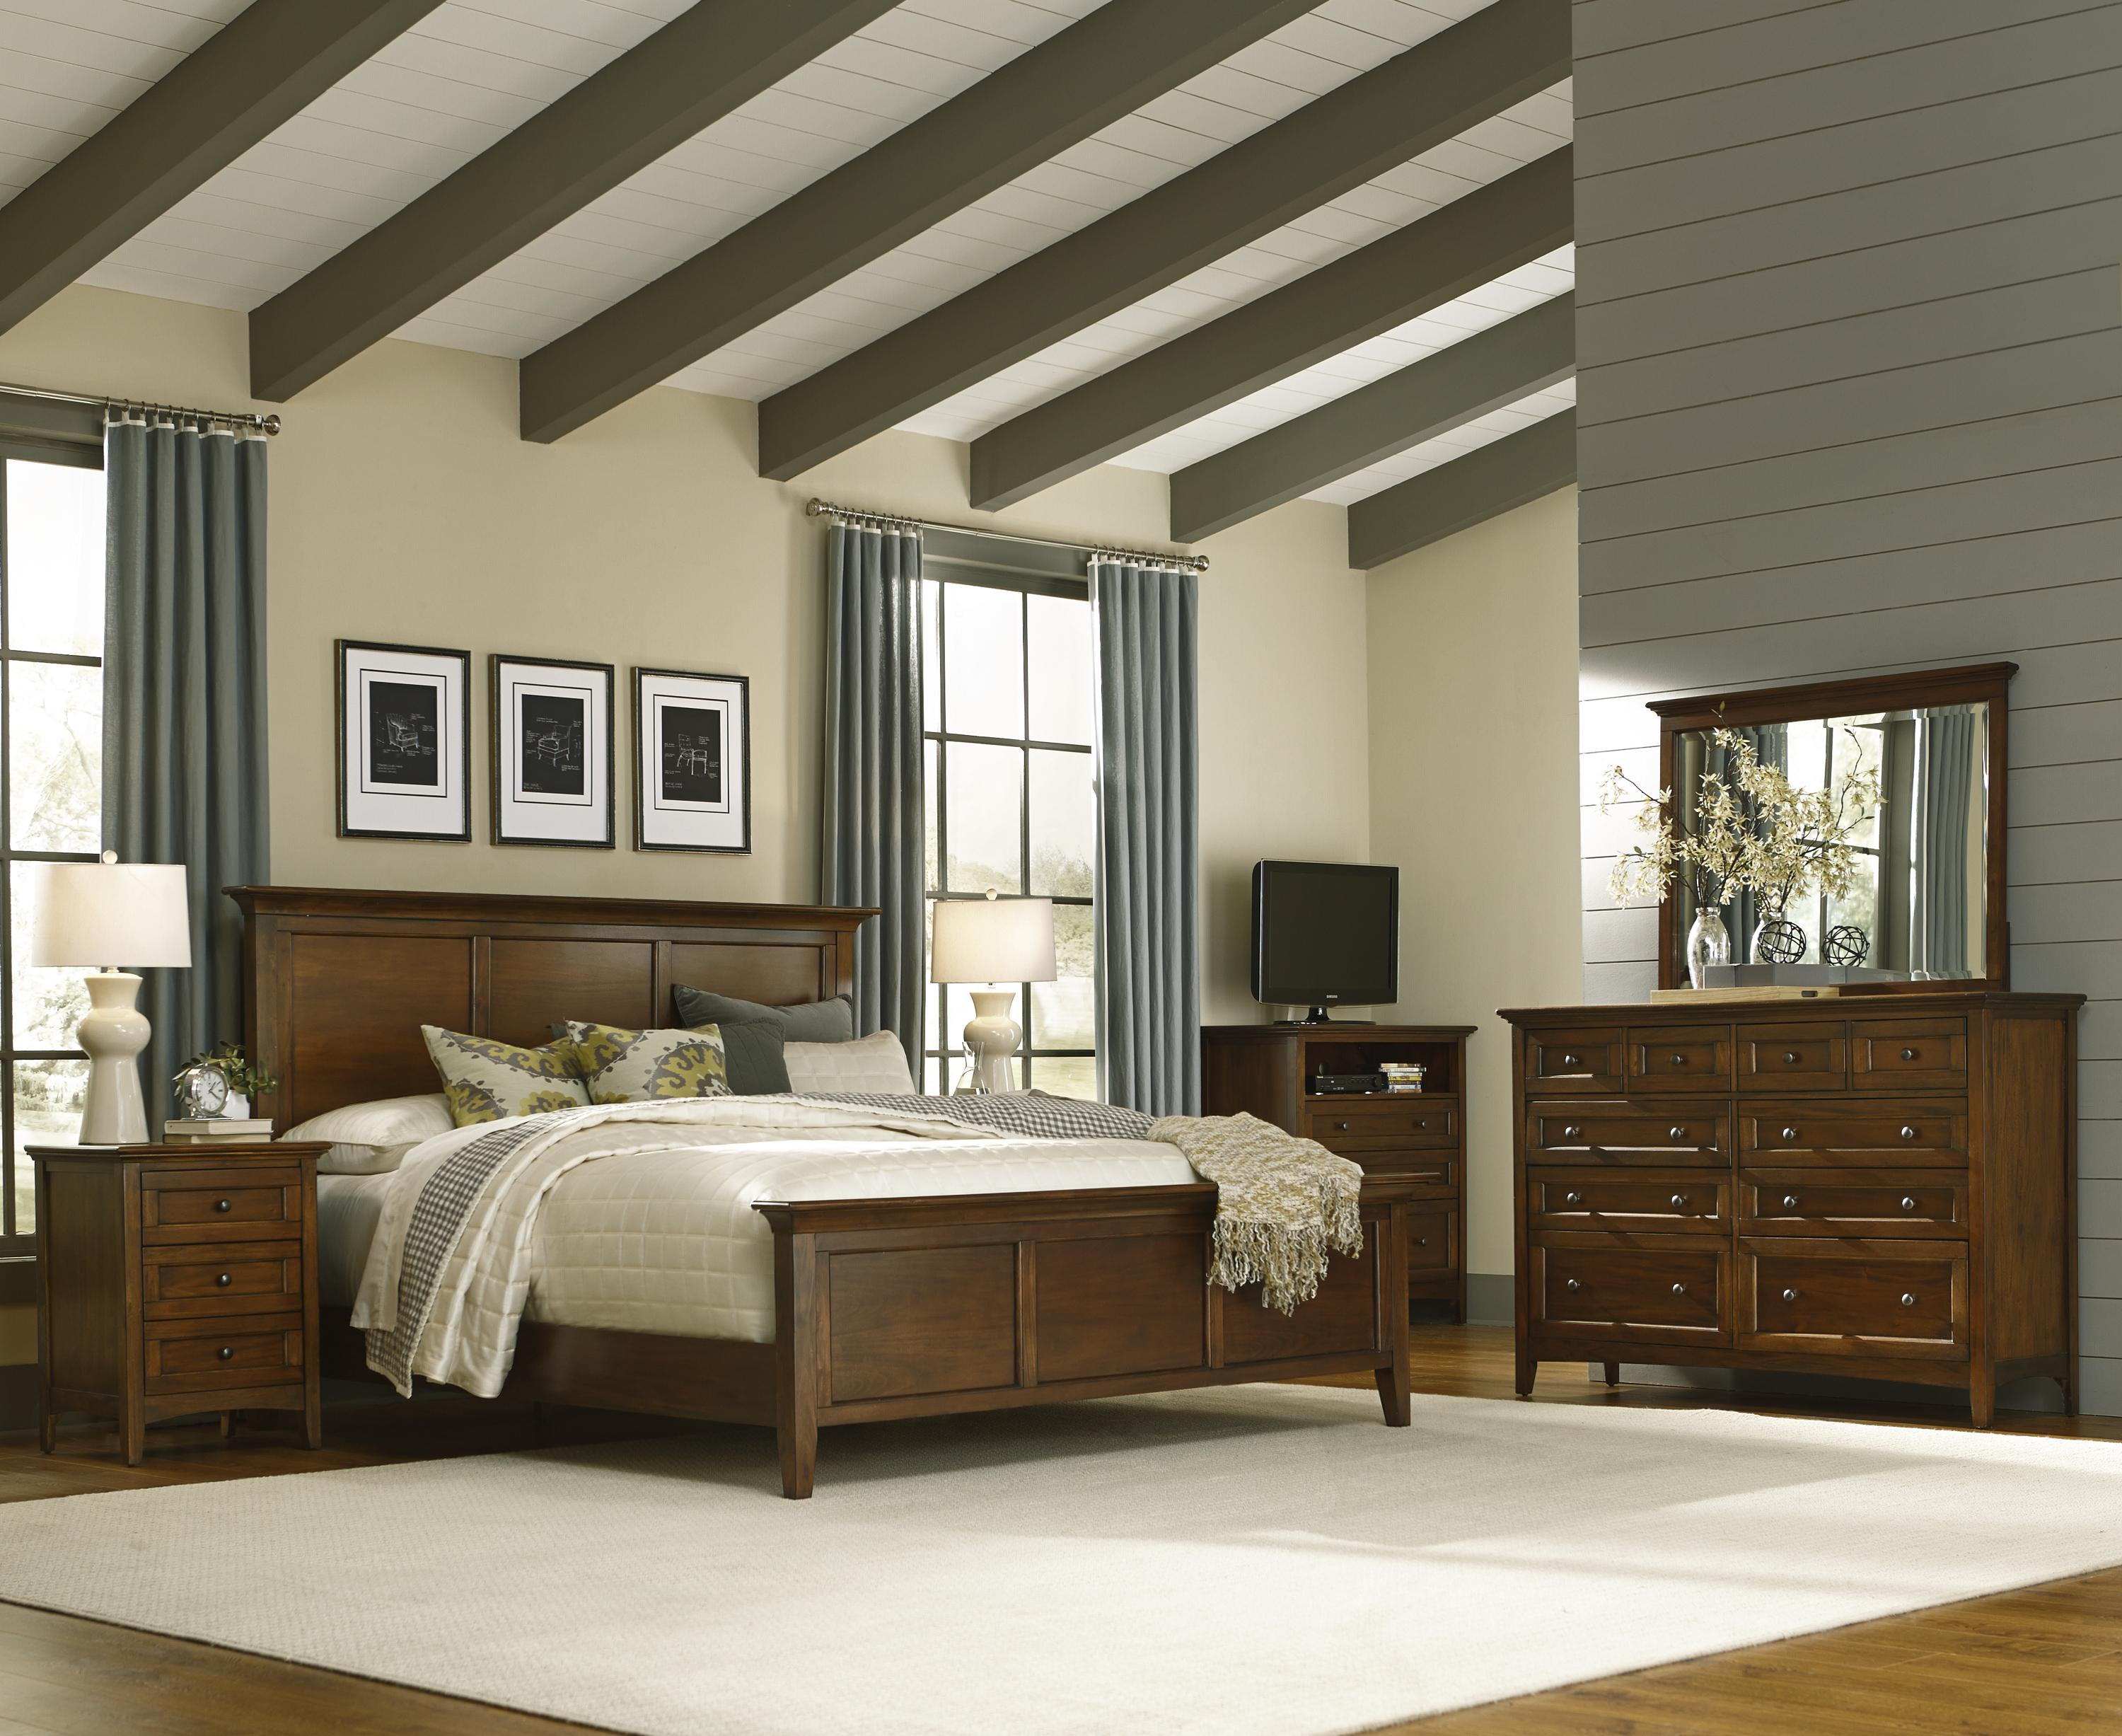 King Panel Bed By Aamerica Wolf And Gardiner Wolf Furniture